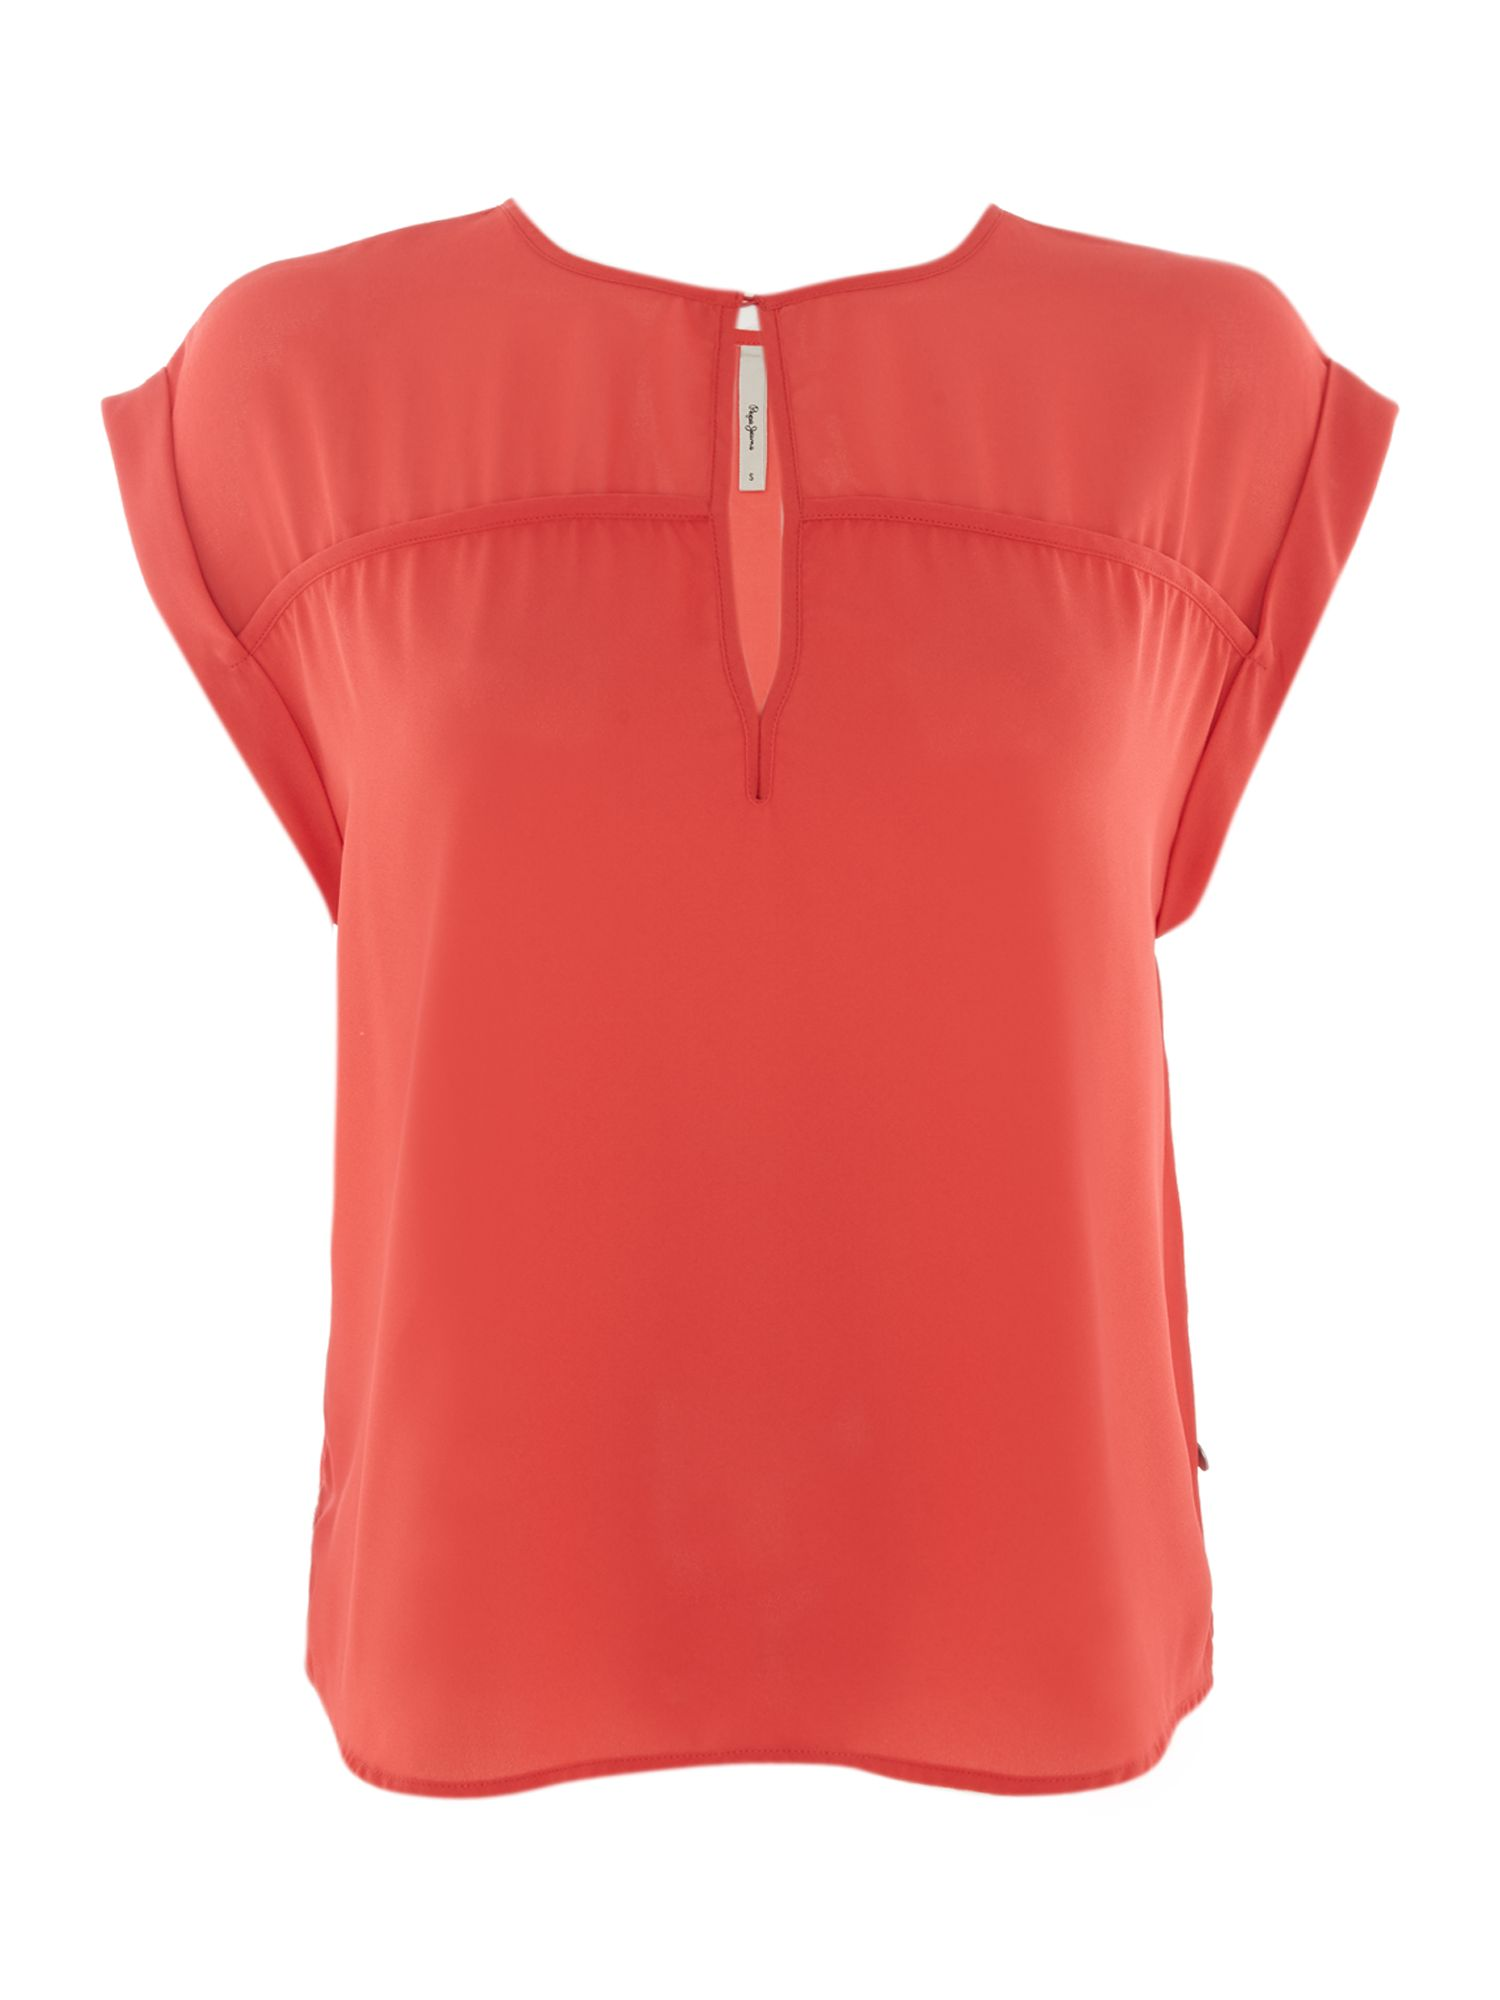 Pepe Jeans Carey Shirt, Red